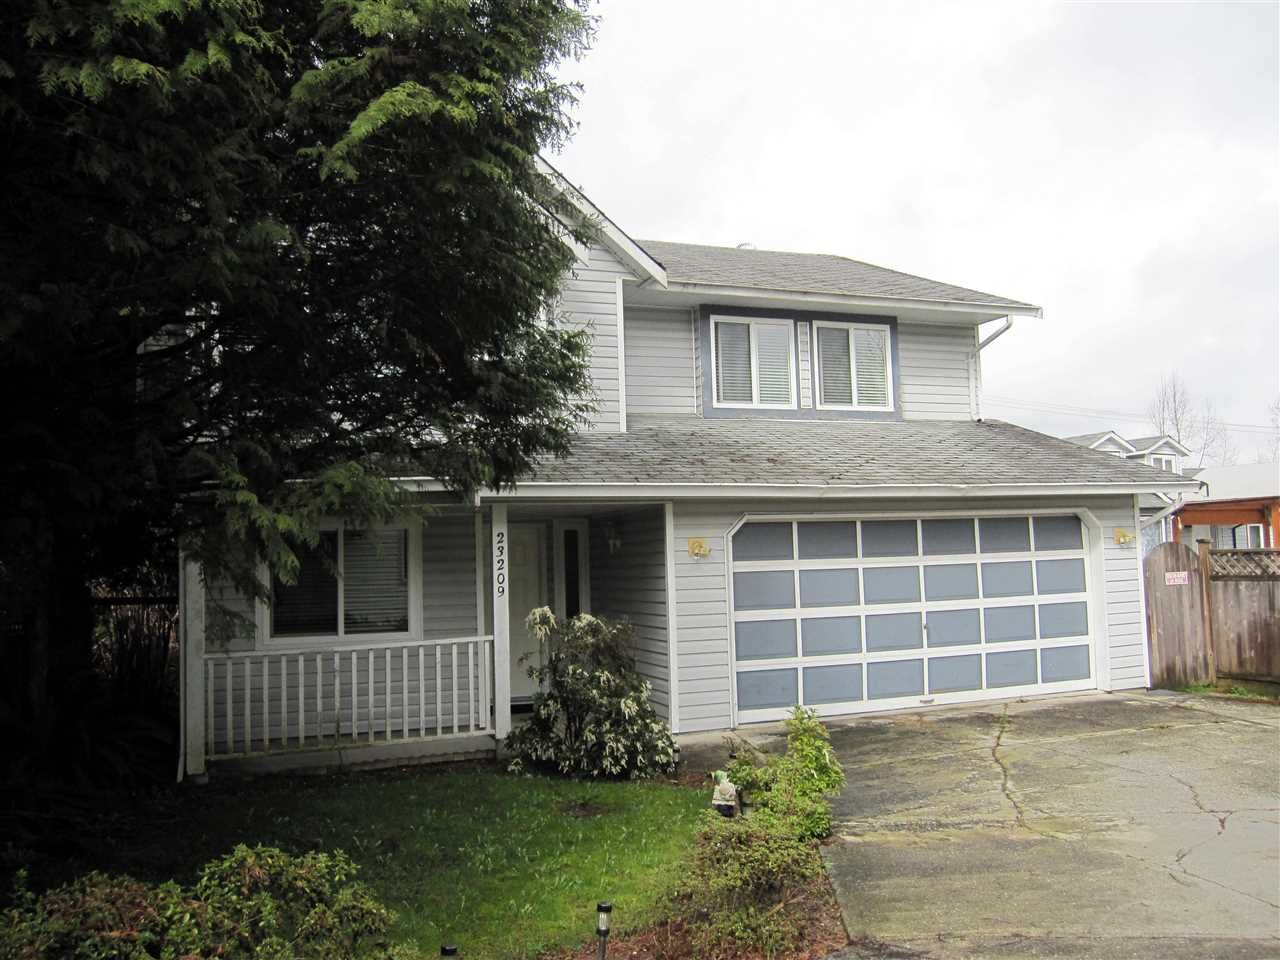 Photo 2: Photos: 23209 123 Avenue in Maple Ridge: East Central House for sale : MLS®# R2049127